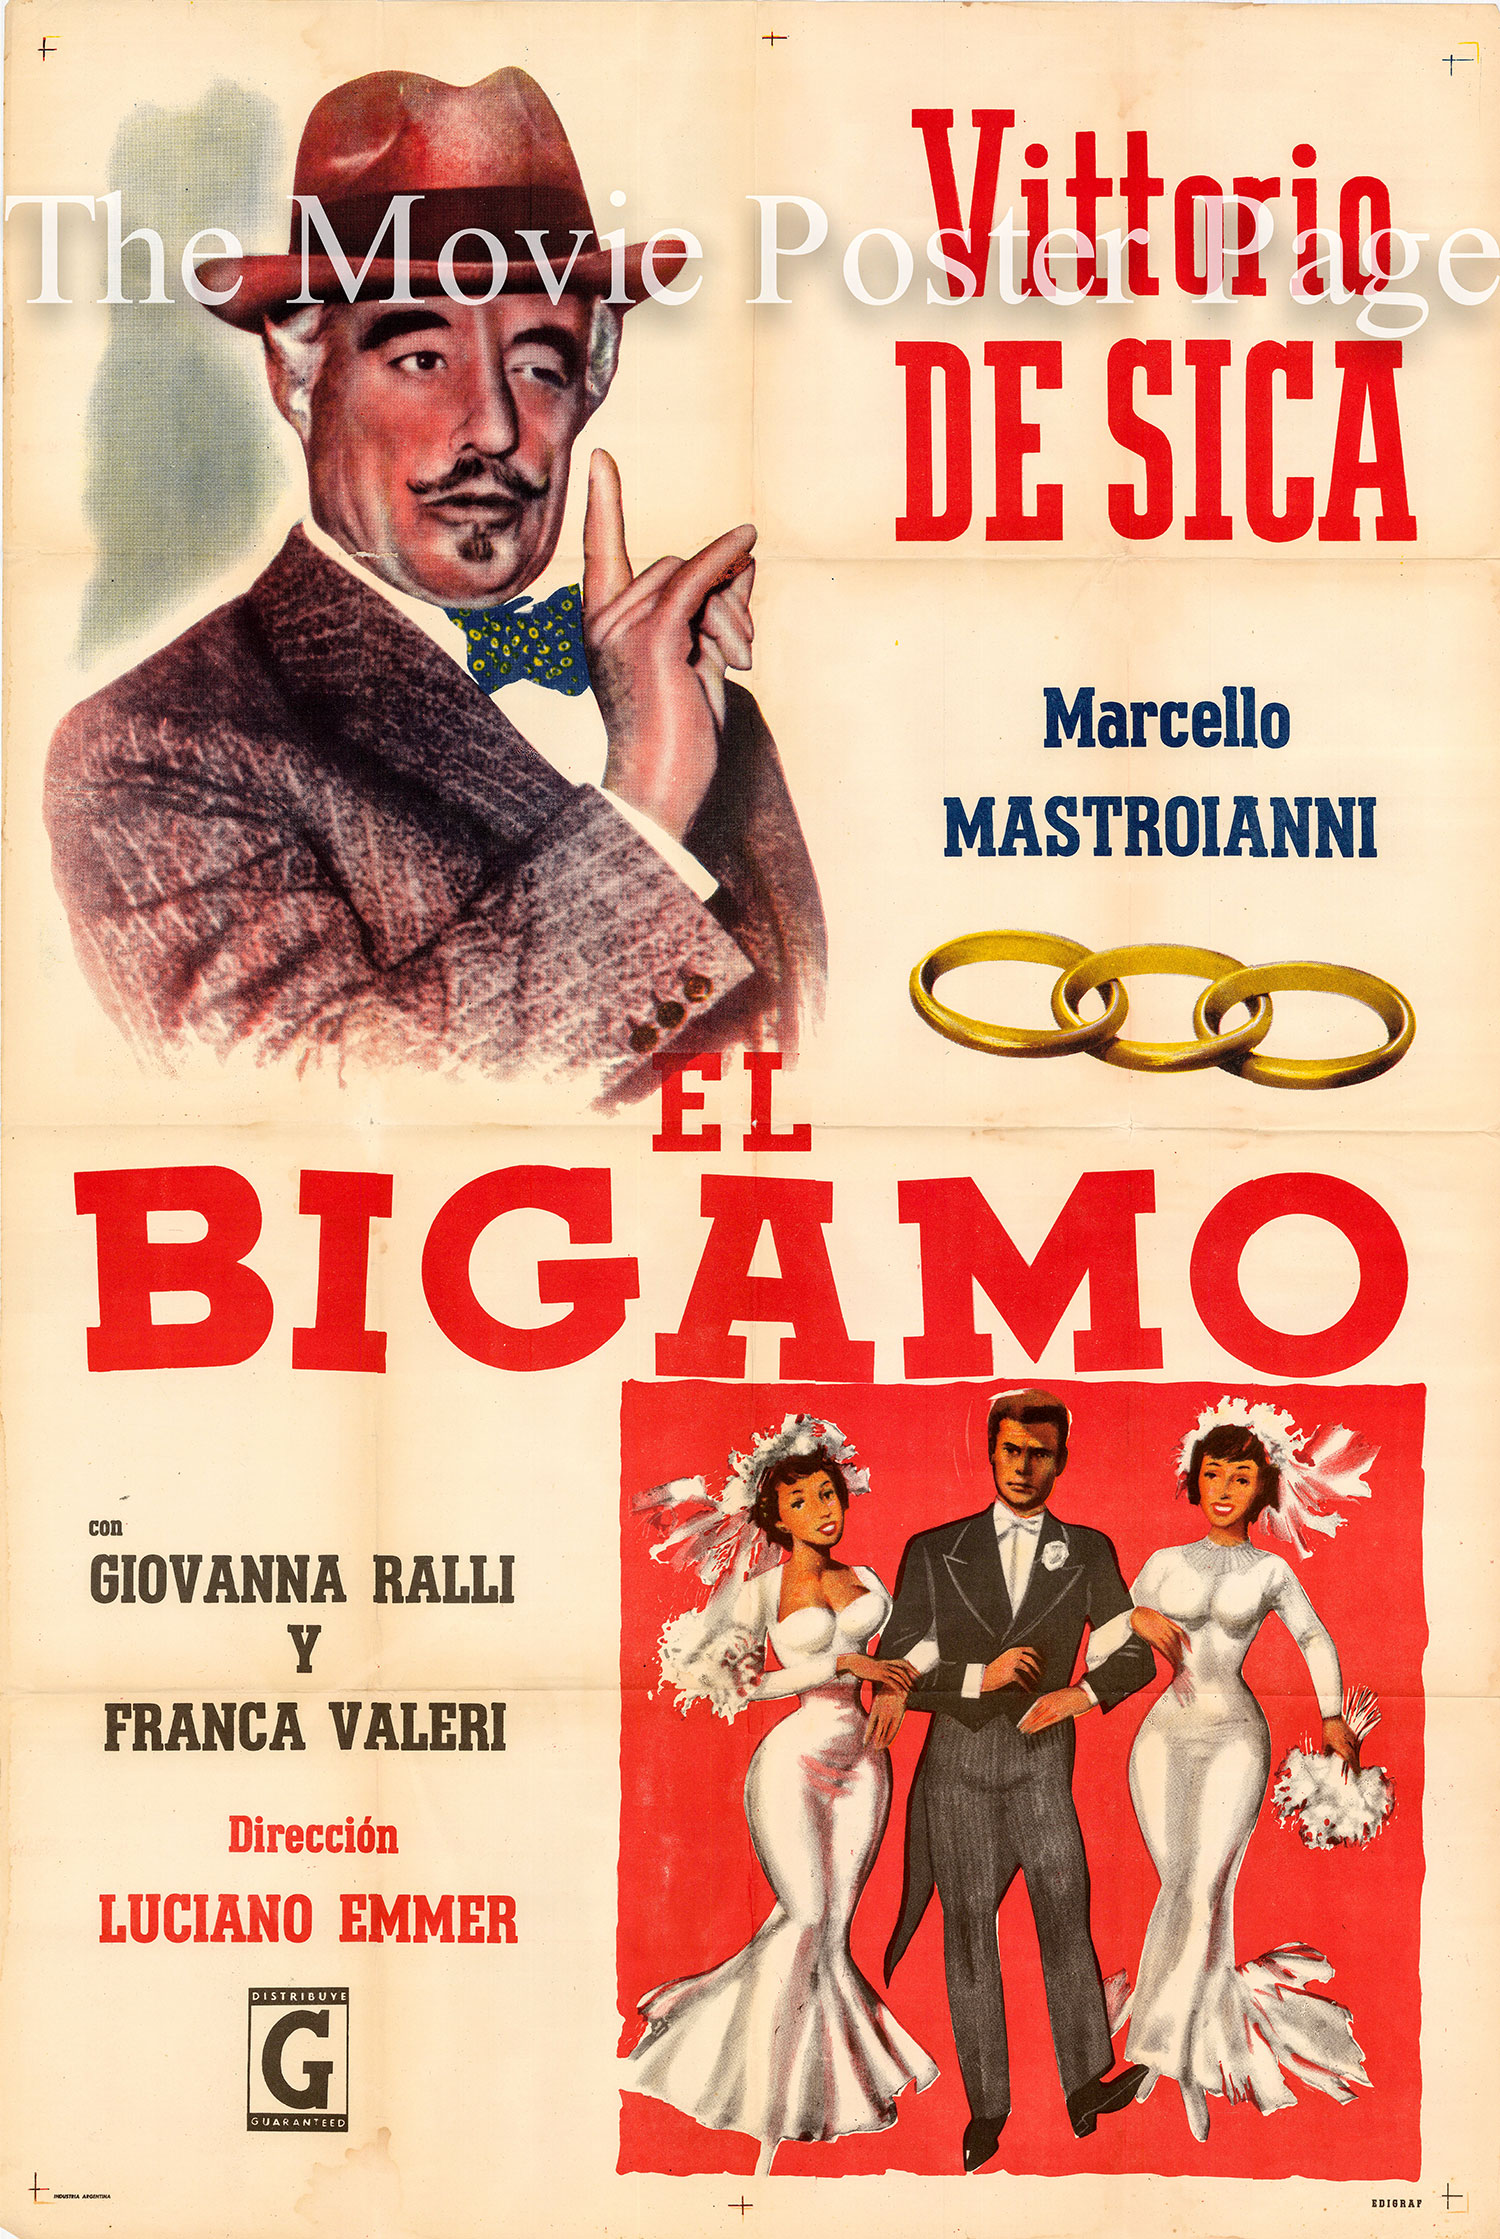 Pictured is an Argentine one-sheet poster for the 1956 Luciano Emmer film The Bigamist starring Marcello Mastroianni.